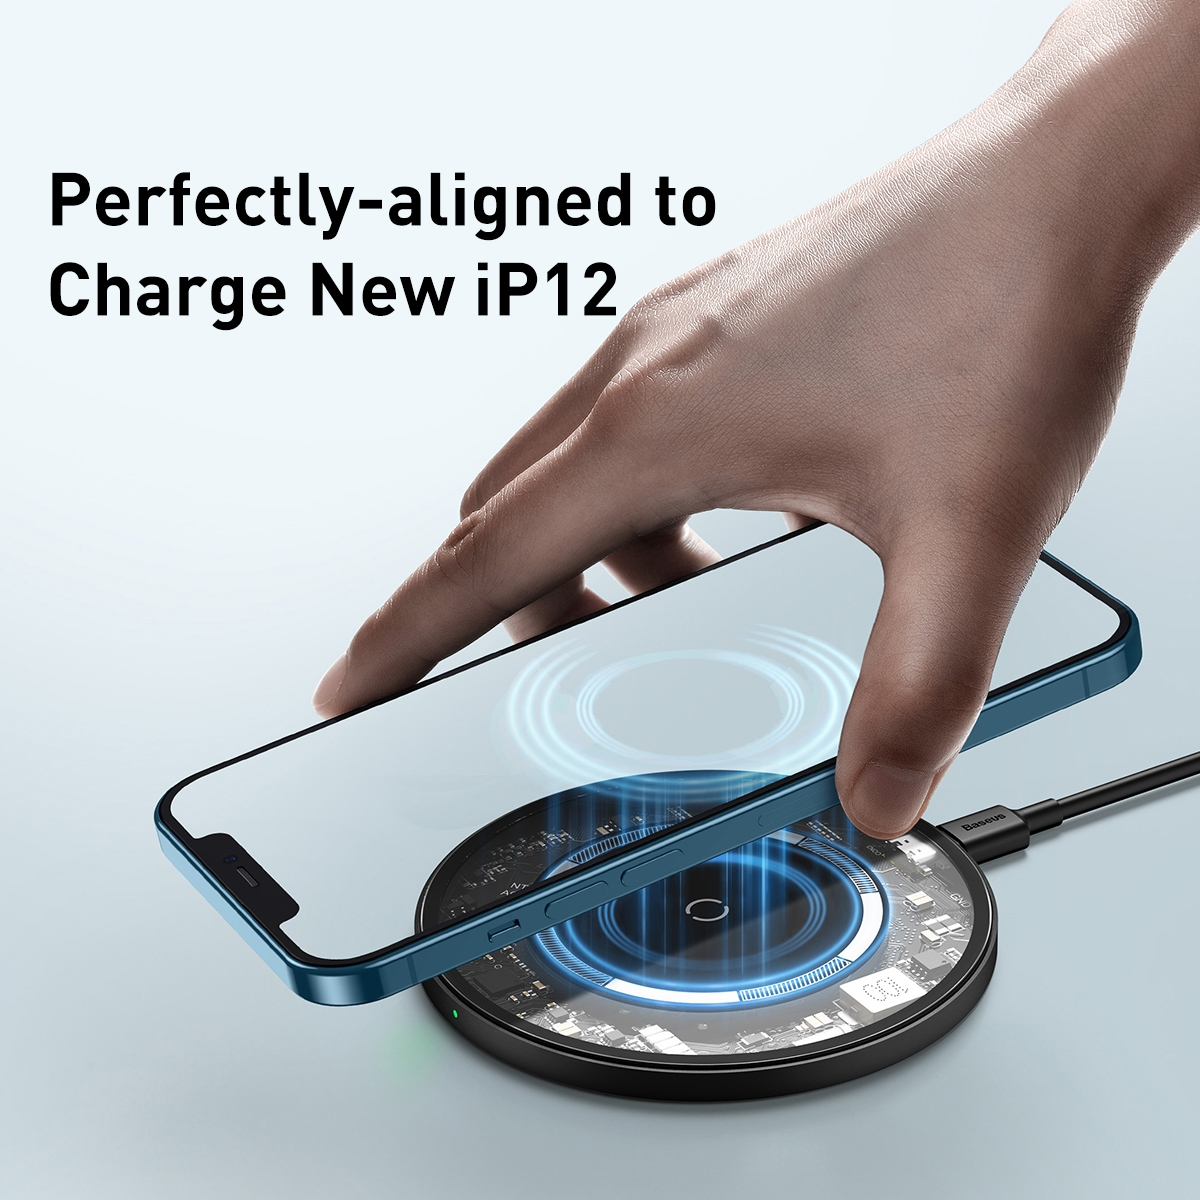 Baseus Baseus Simple Magnetic Wireless Charger for iPhone 12 - Transparent